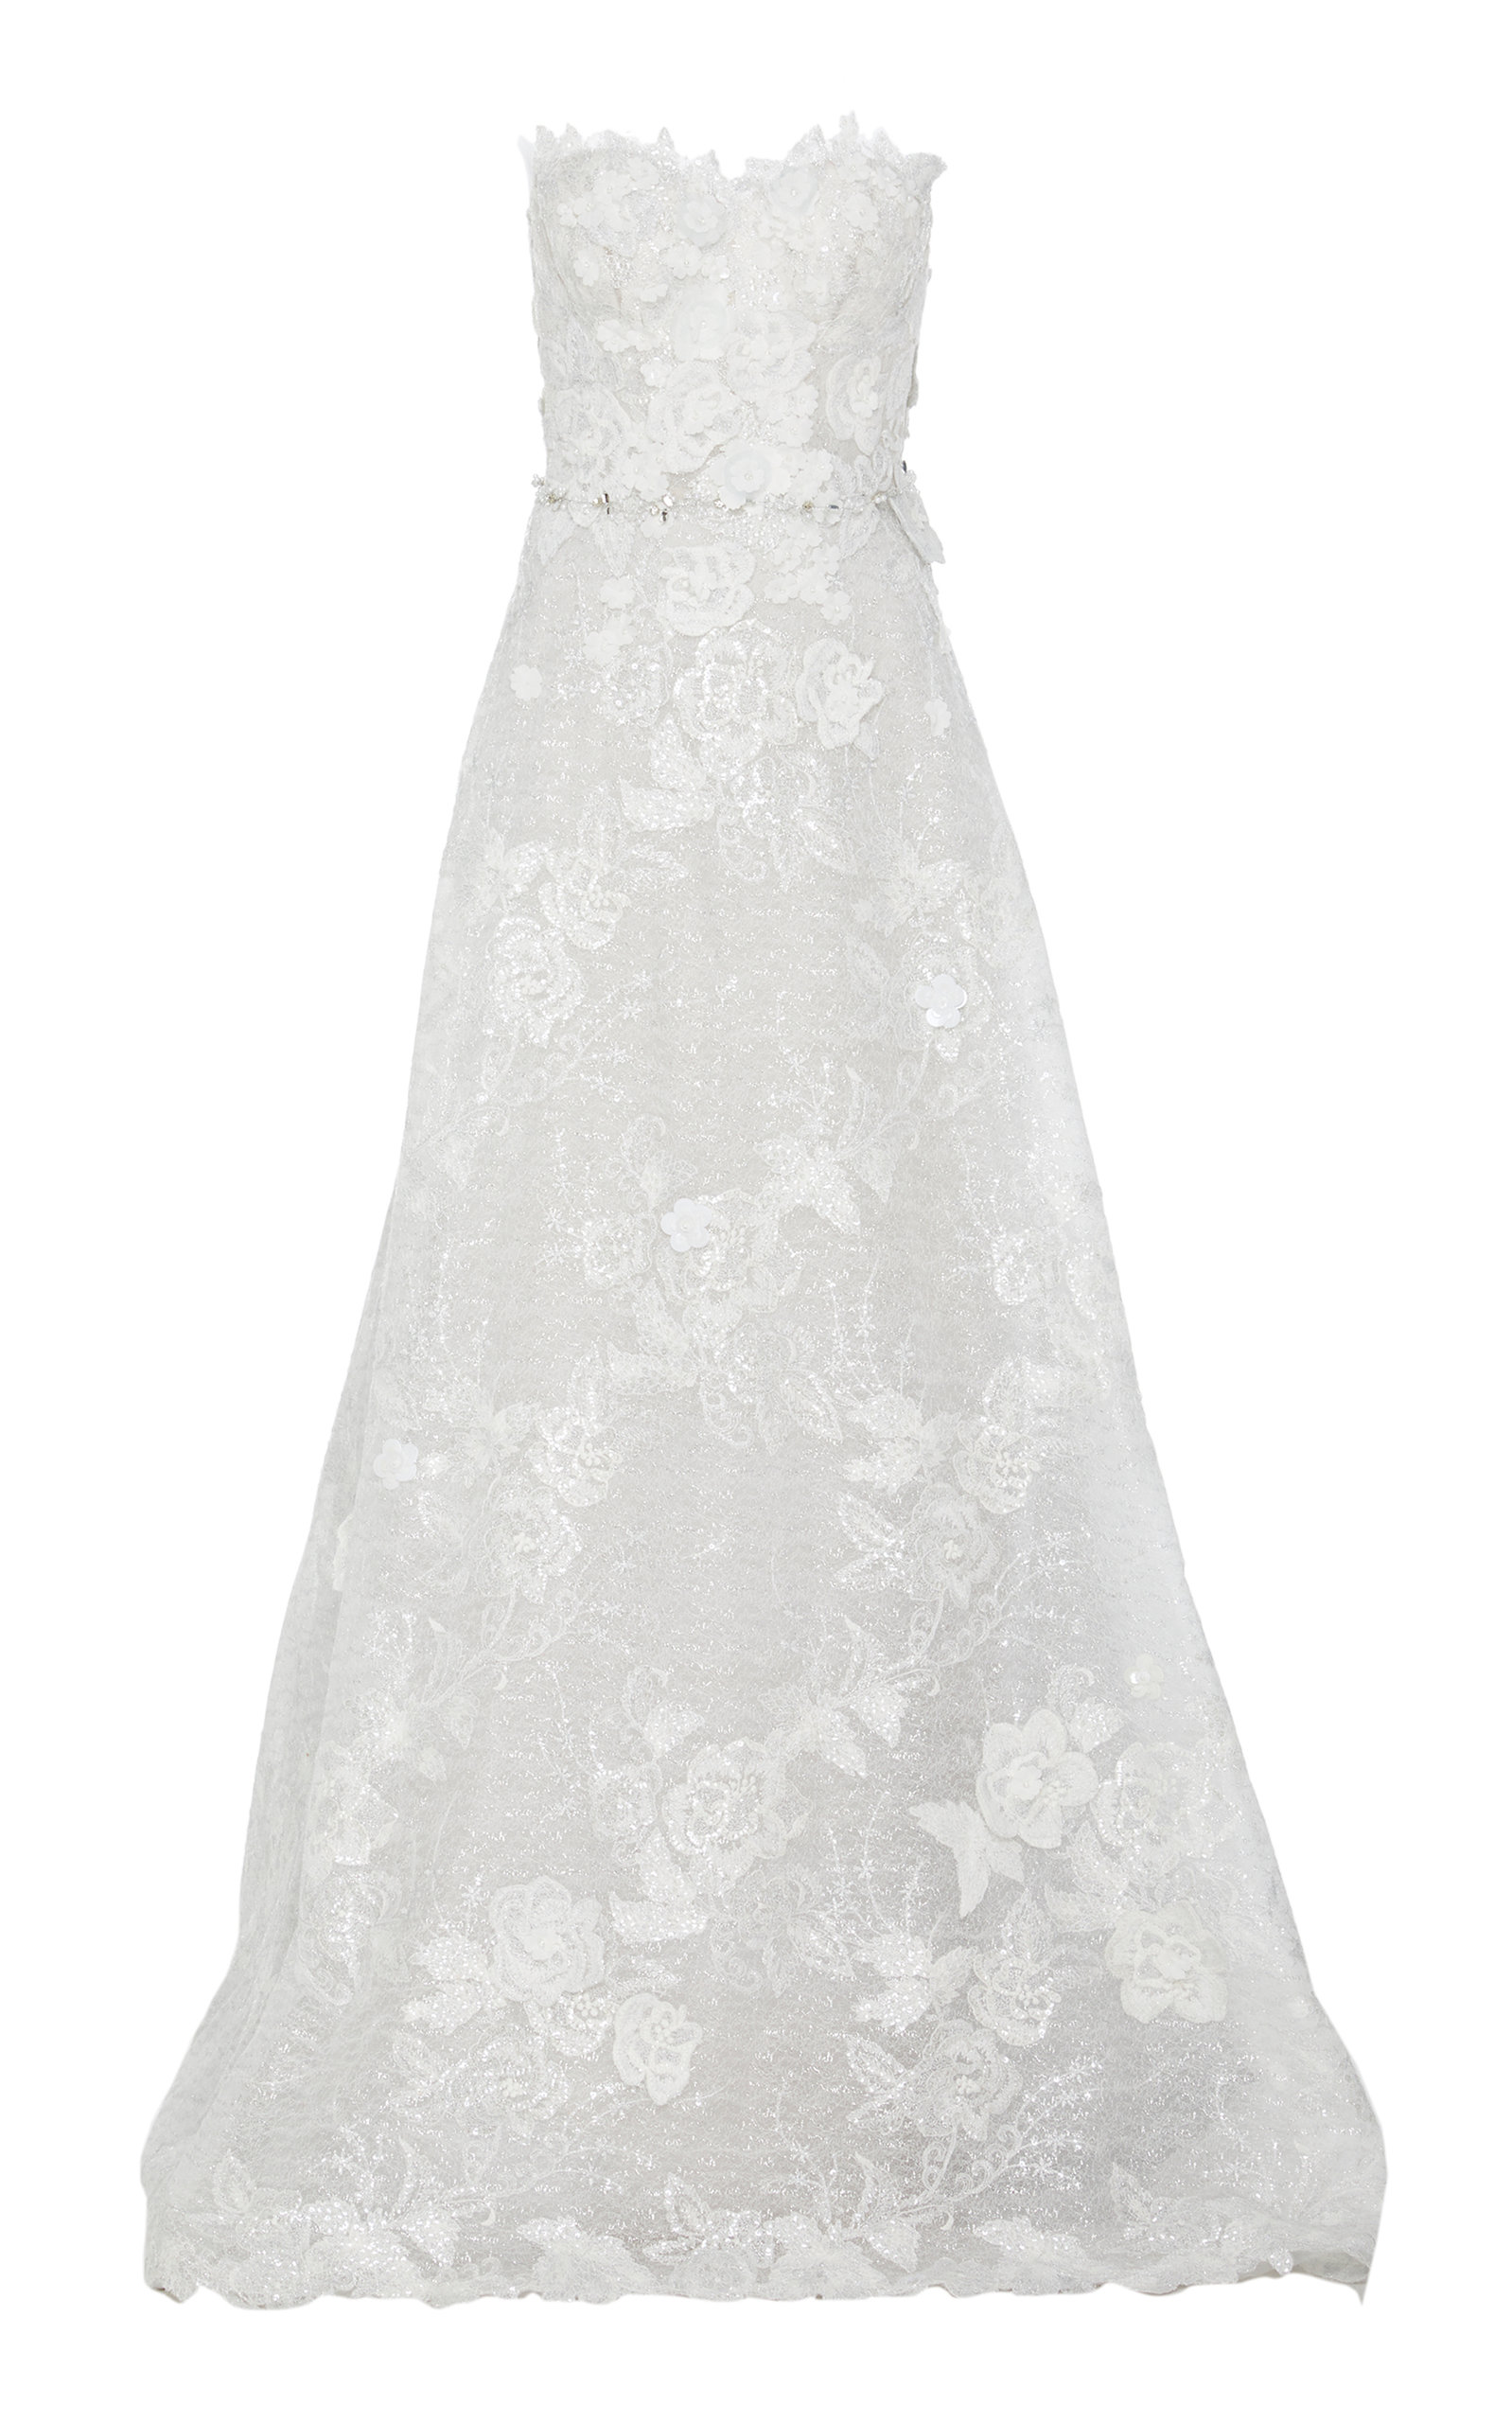 MIRA ZWILLINGER M'O EXCLUSIVE ASHALIA STRAPLESS LACE GOWN